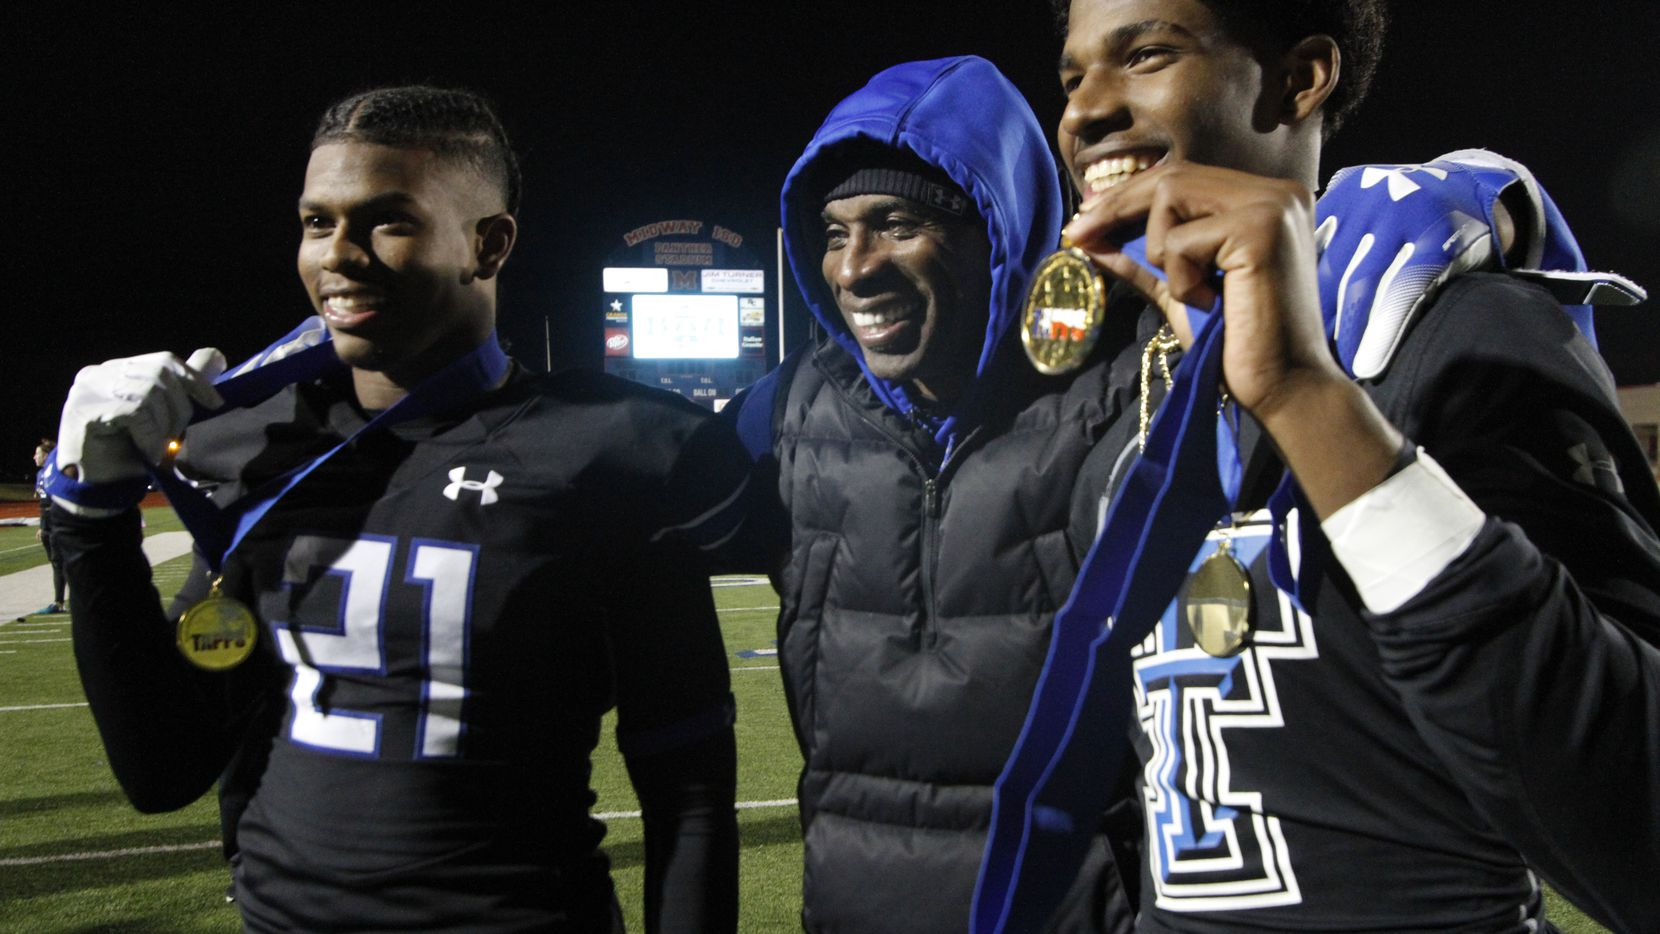 TC-Cedar Hill assistant coach Deion Sanders poses with his sons Shilo Sanders (21) and Shedeur Sanders (2) as the trio celebrate the team's 49-24 victory over Austin Regents to claim the state championship trophy and medals. The TAPPS Division ll state championship game between Trinity Christian-Cedar Hill and Austin Regents was played at Waco Midway Stadium in Waco on December 8, 2018.  (Steve Hamm/ Special Contributor)